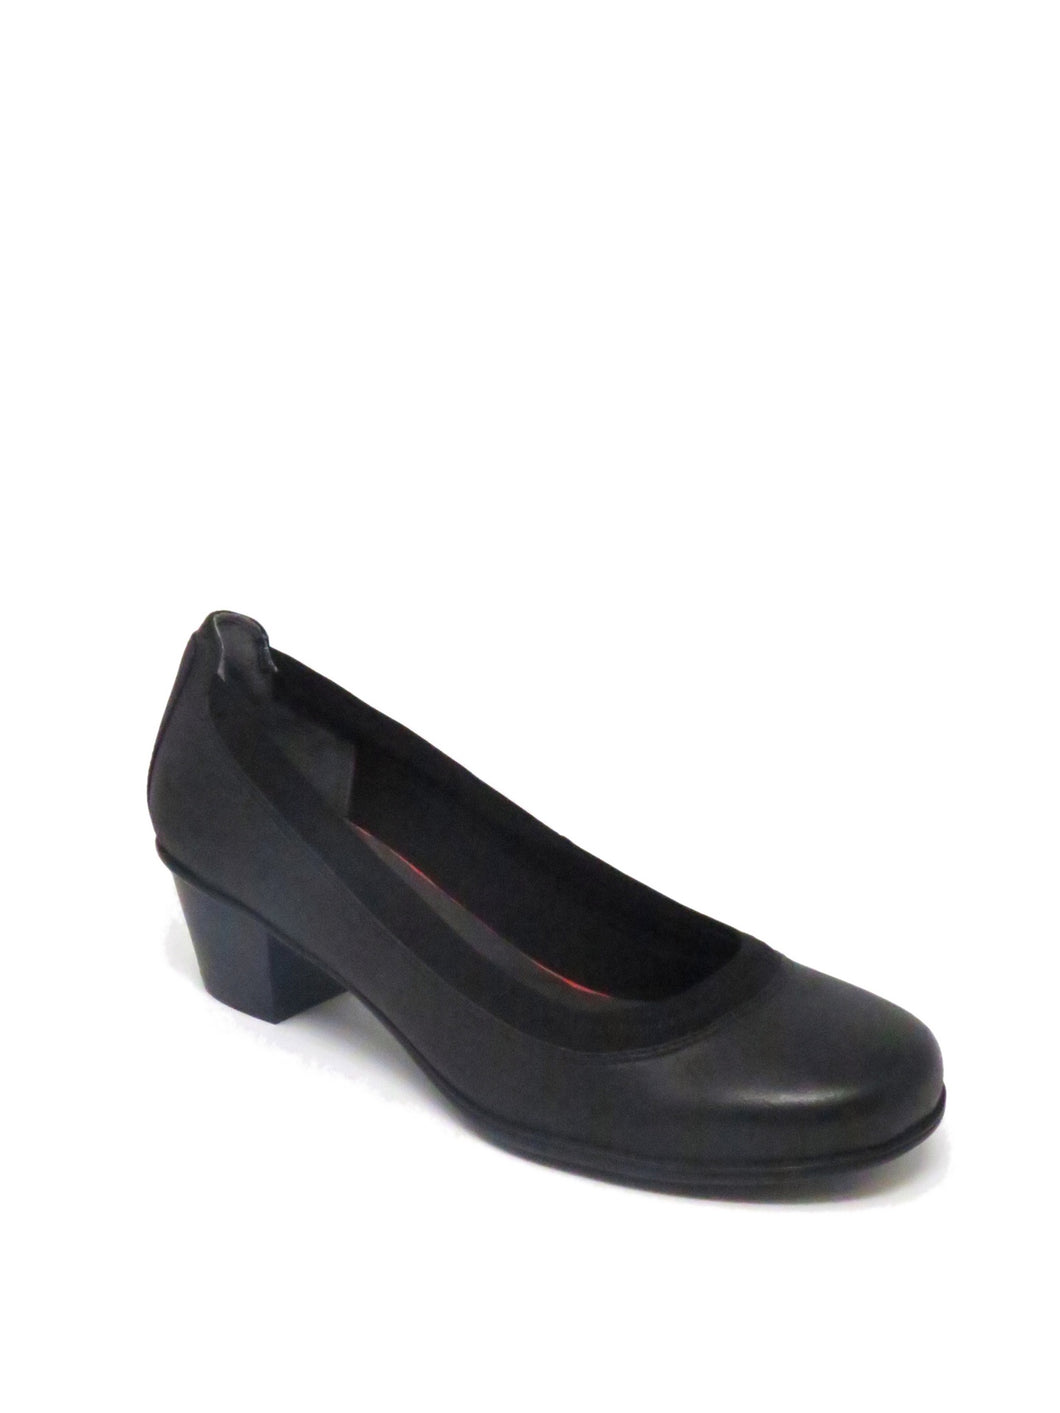 Rockport | M77633 | Amy Pump | Black